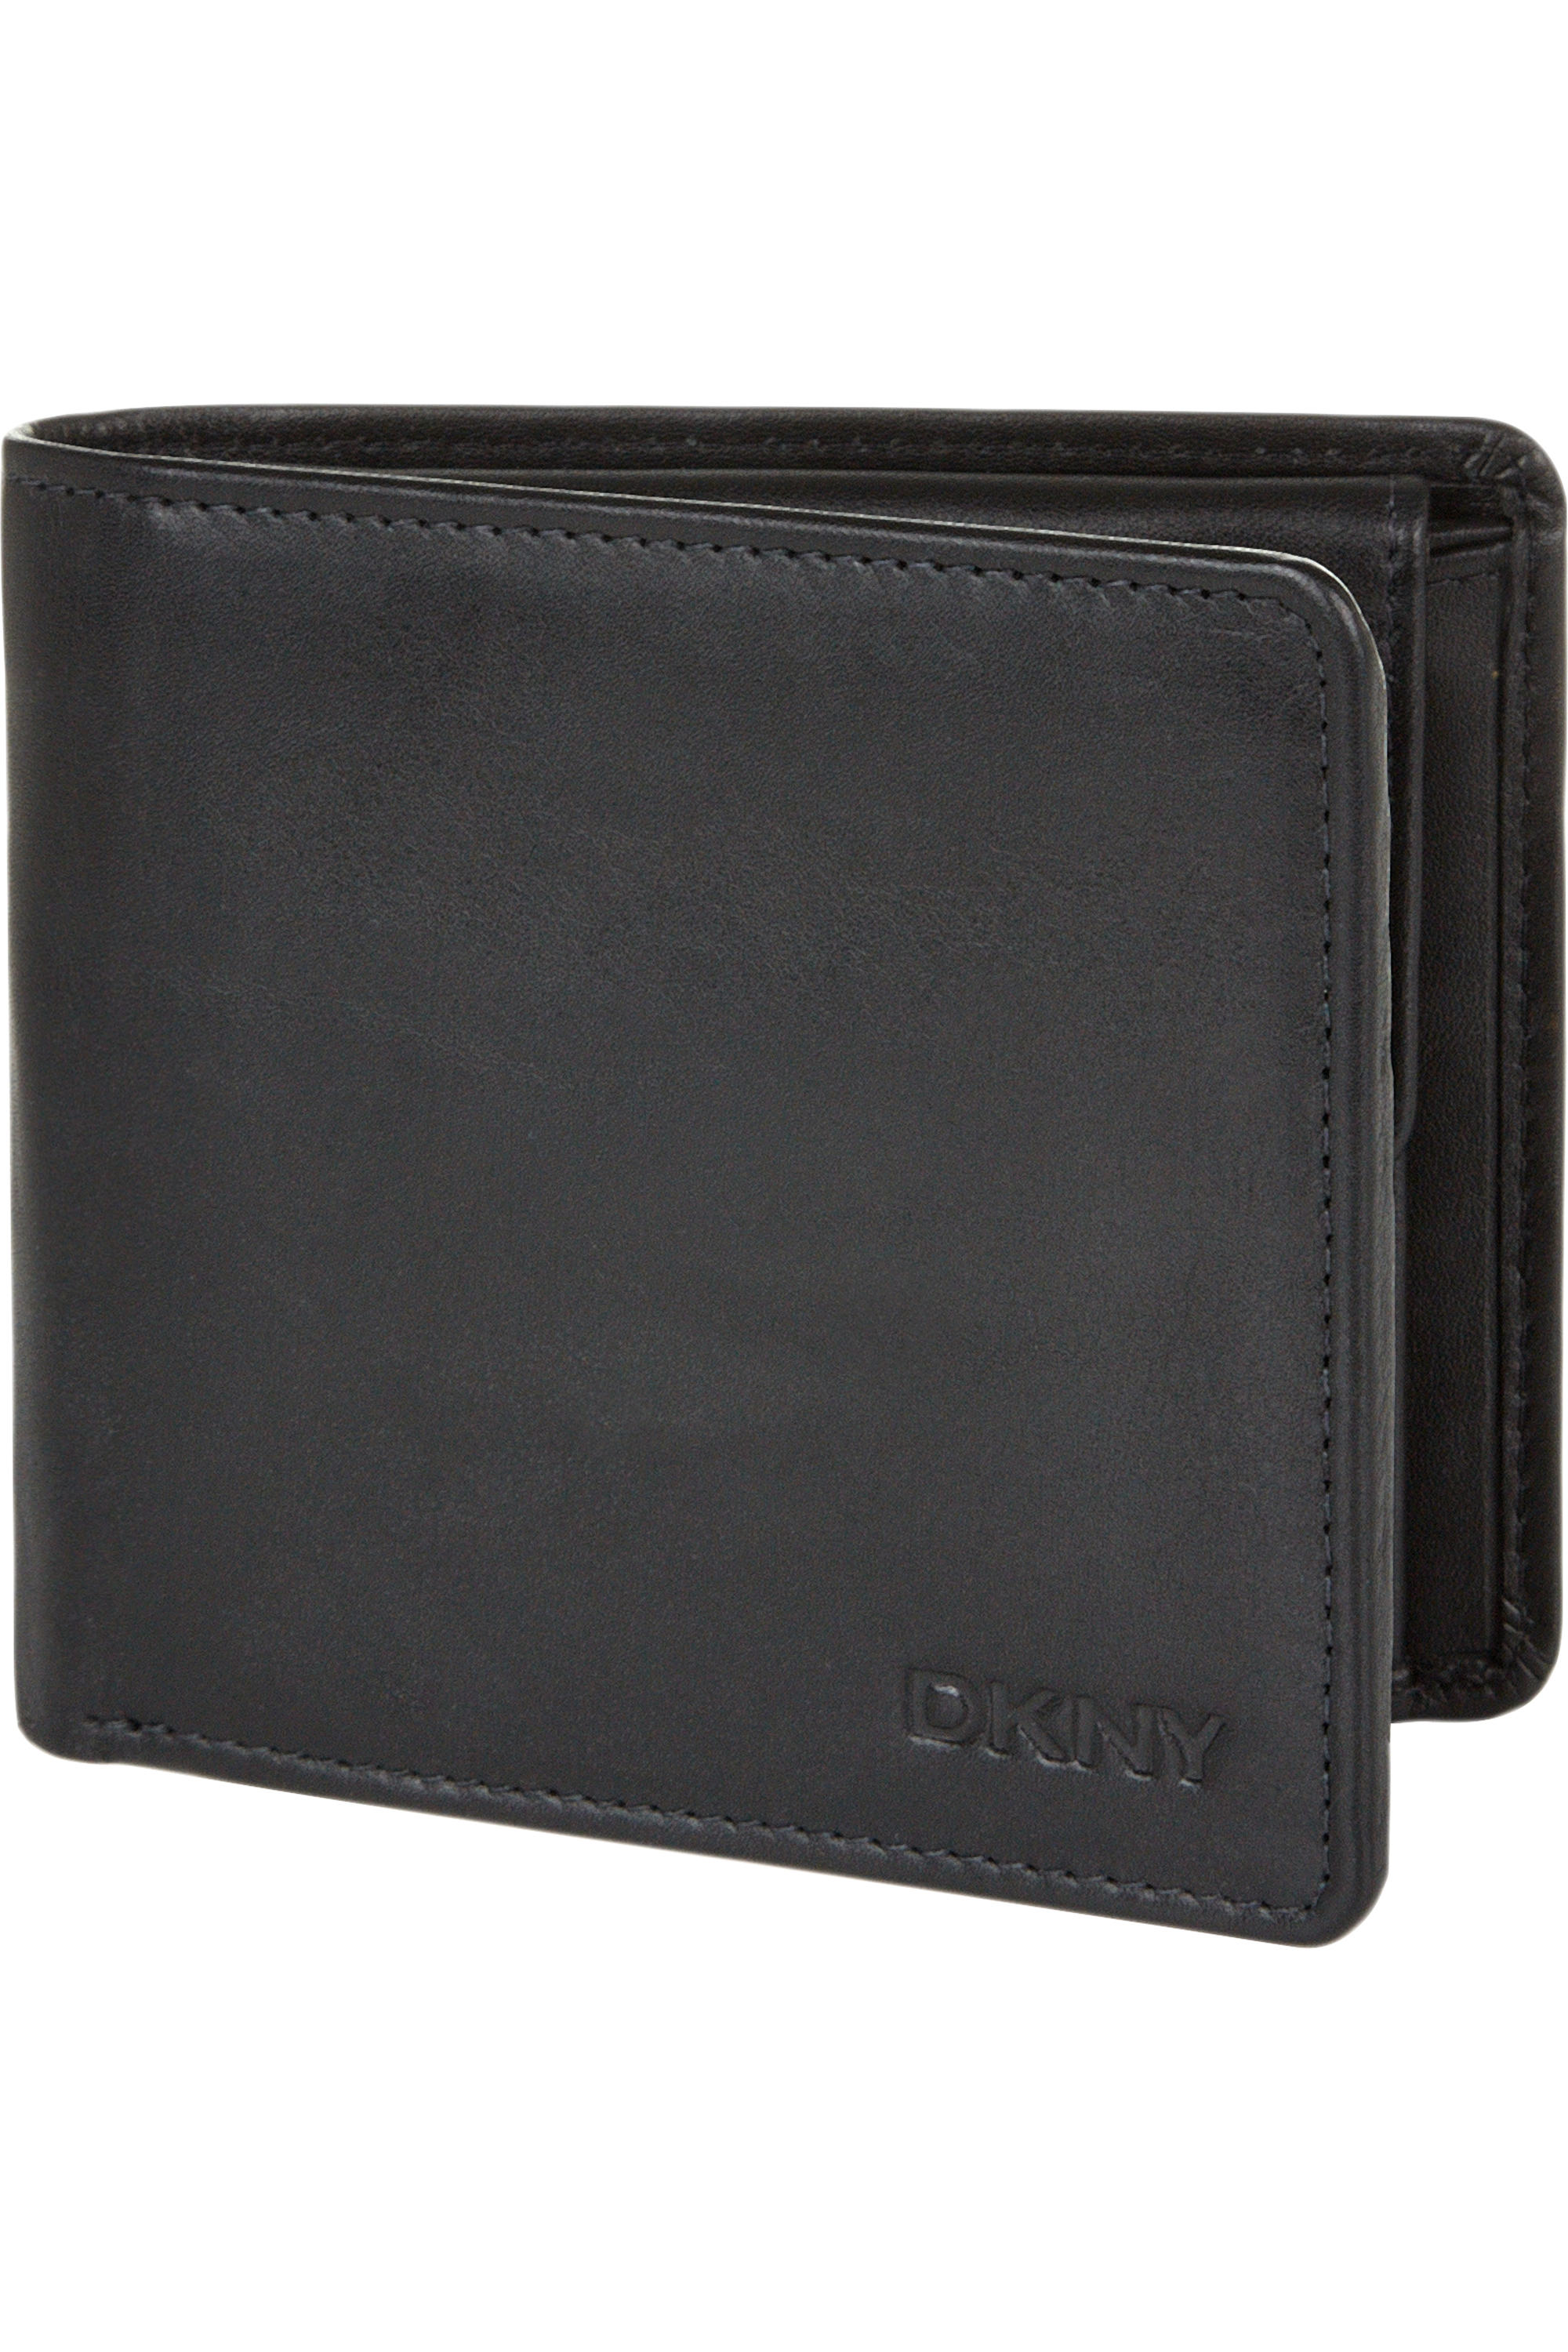 DKNY small square wallet in black saffiano leather | eBay |Dkny Wallet